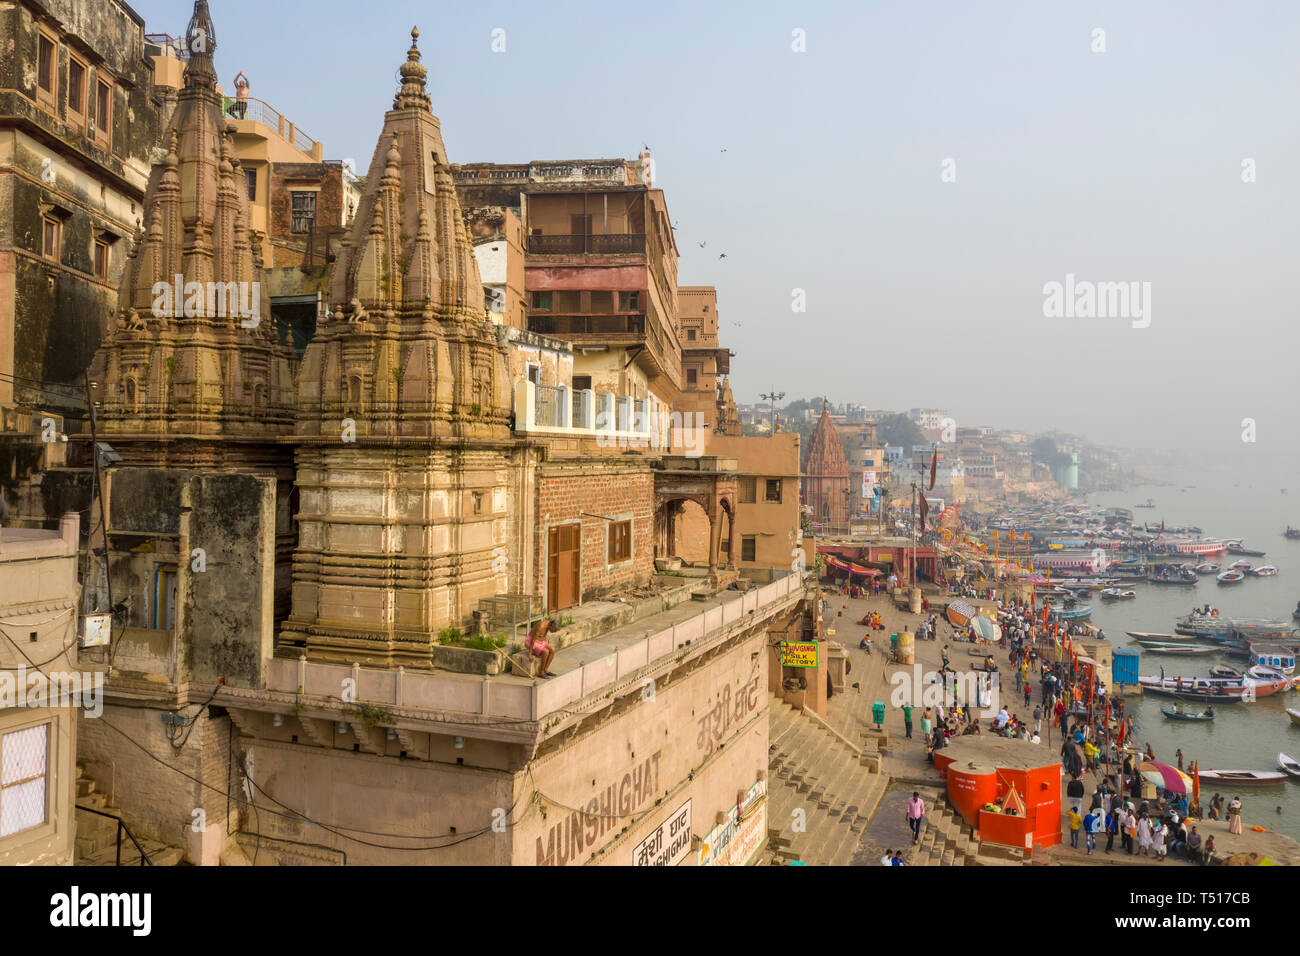 India, Uttar Pradesh, Varanasi, Gange River and Historic Ghats - Stock Image